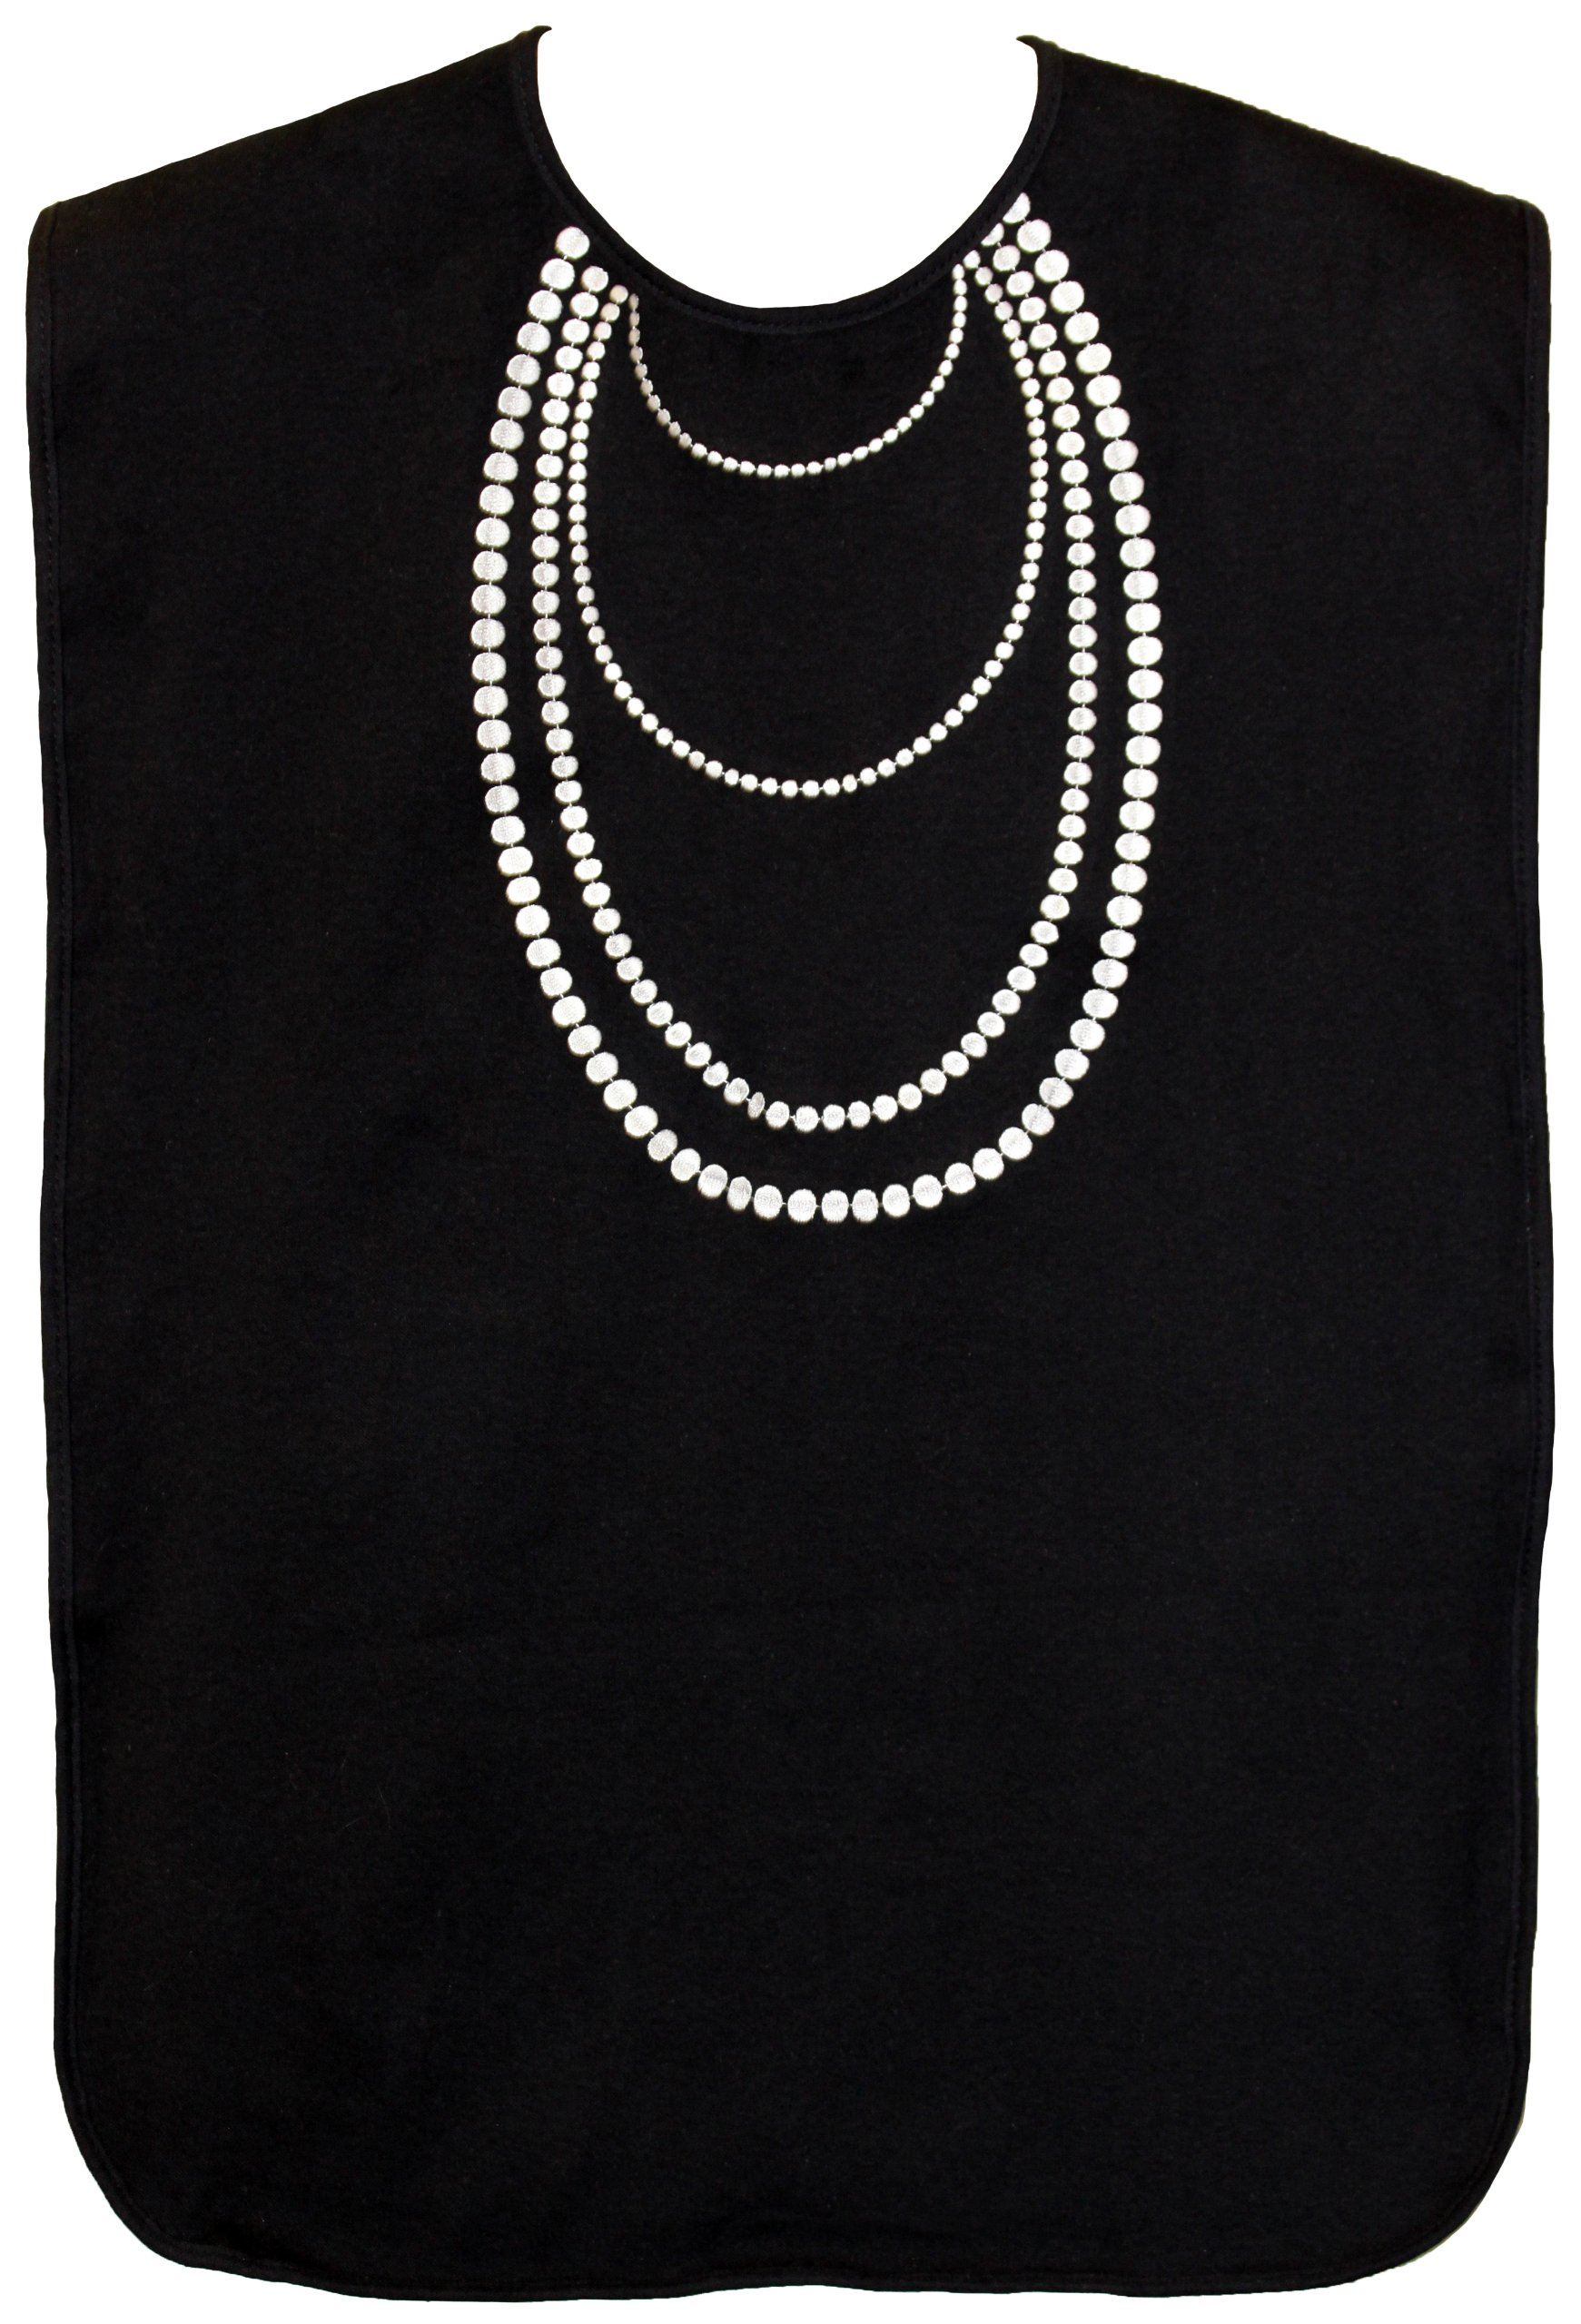 Ladies Waterproof Adult Bib, Black with White Pearl Embroidery, Frenchie Mini Couture